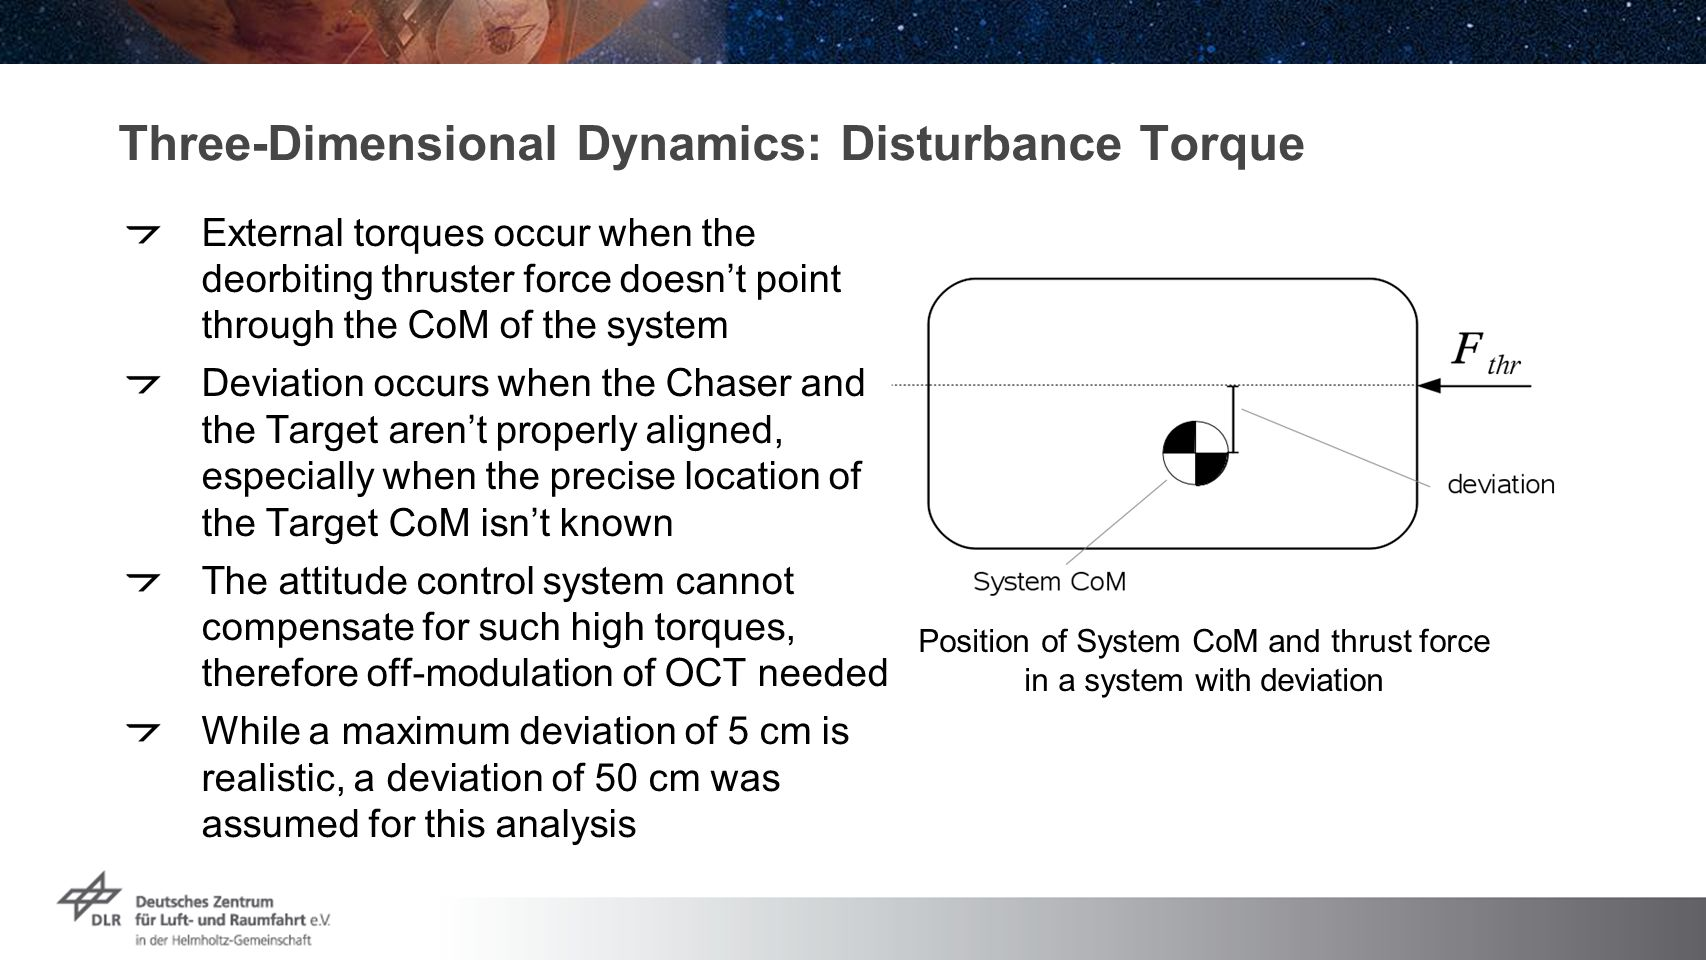 Three-Dimensional Dynamics: Disturbance Torque External torques occur when the deorbiting thruster force doesn't point through the CoM of the system Deviation occurs when the Chaser and the Target aren't properly aligned, especially when the precise location of the Target CoM isn't known The attitude control system cannot compensate for such high torques, therefore off-modulation of OCT needed While a maximum deviation of 5 cm is realistic, a deviation of 50 cm was assumed for this analysis Position of System CoM and thrust force in a system with deviation